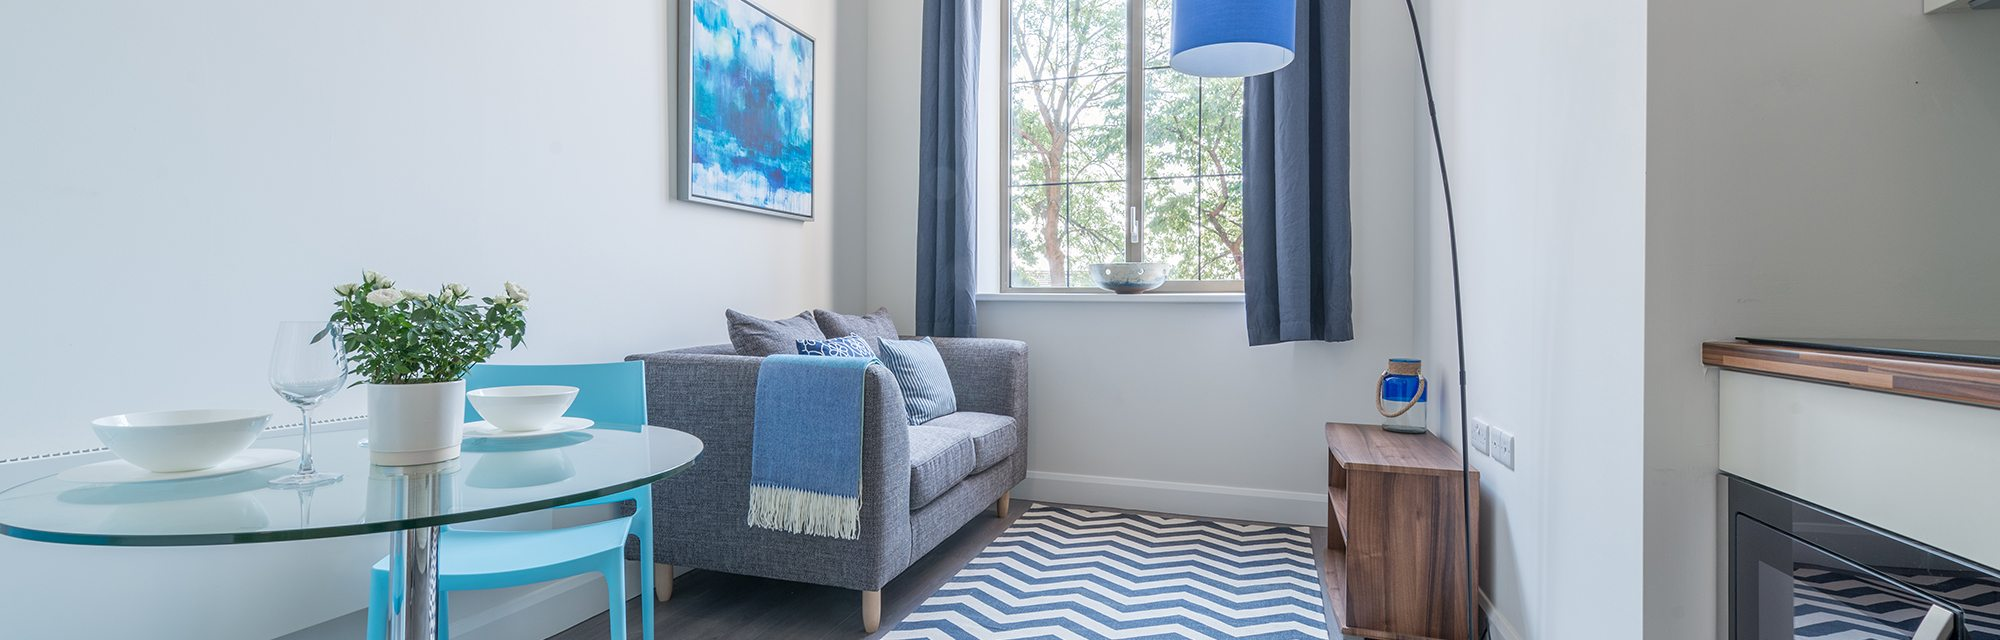 All you could need in one cosy home; discover our mezzanine studio apartments to rent in Leeds at CQ The Court